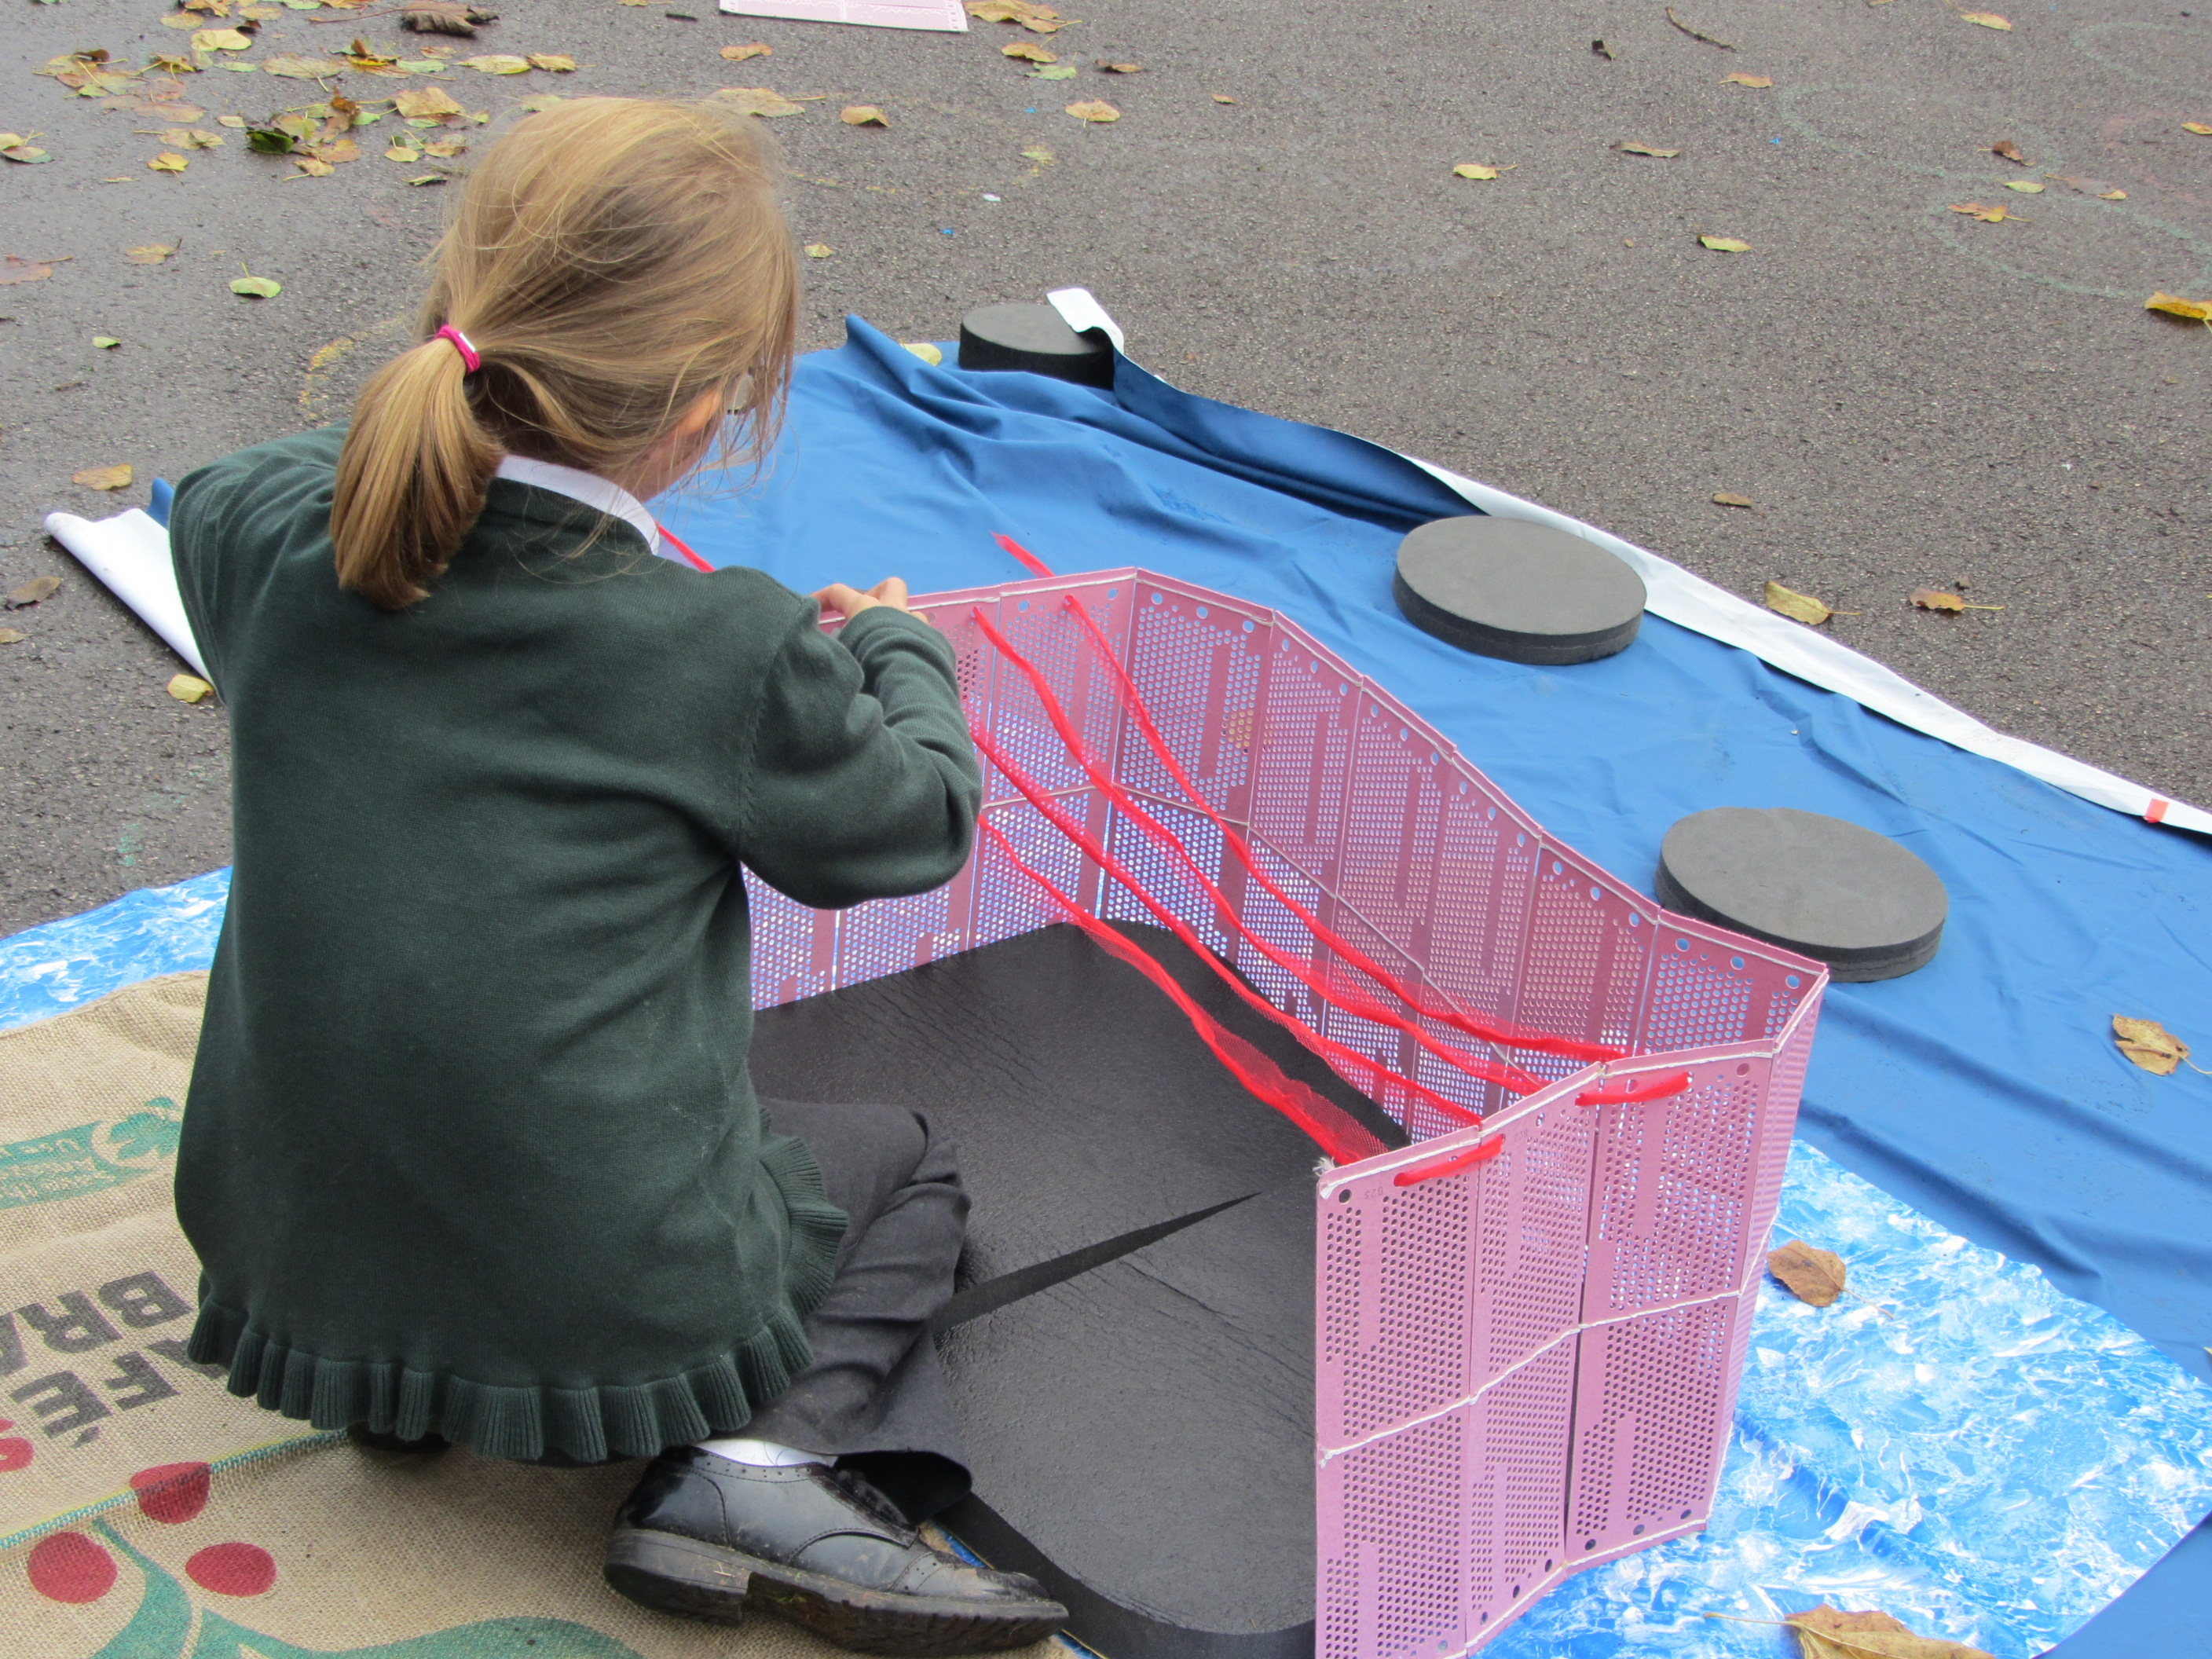 Portable Playground in action